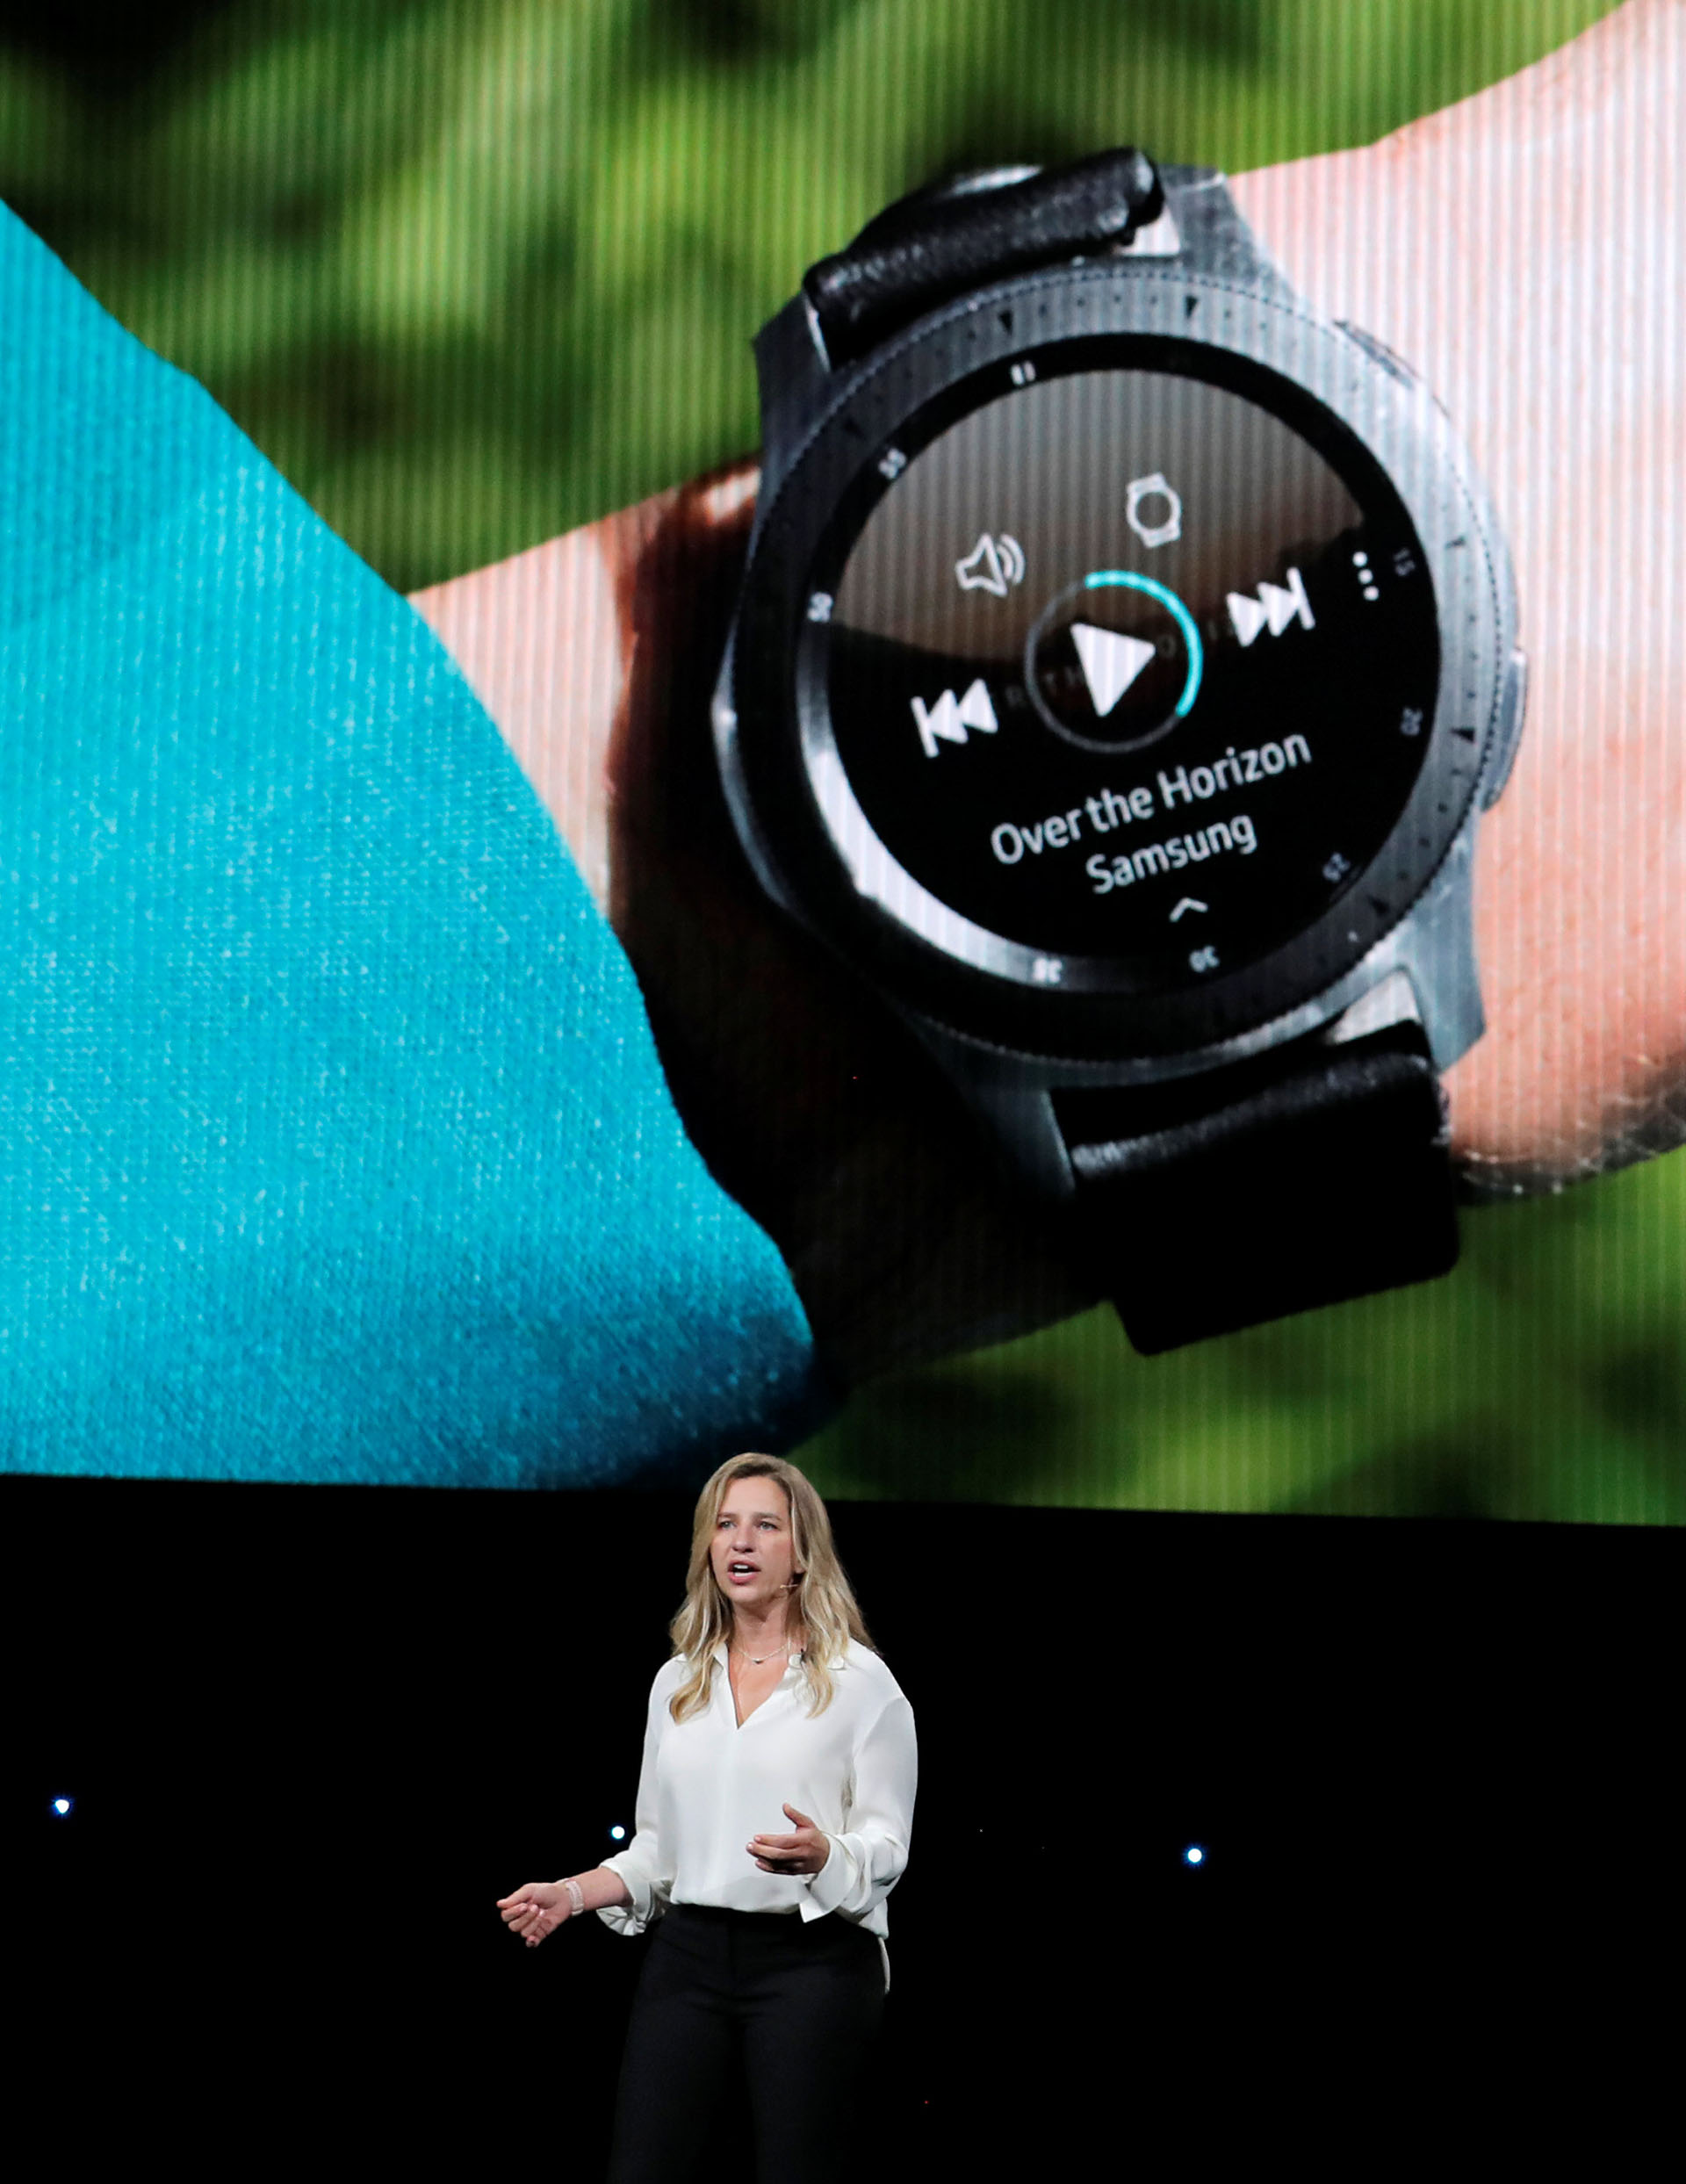 Elina Vives, directora de Marketing de Samsung, presenta el nuevo smartwatch (REUTERS/Lucas Jackson).